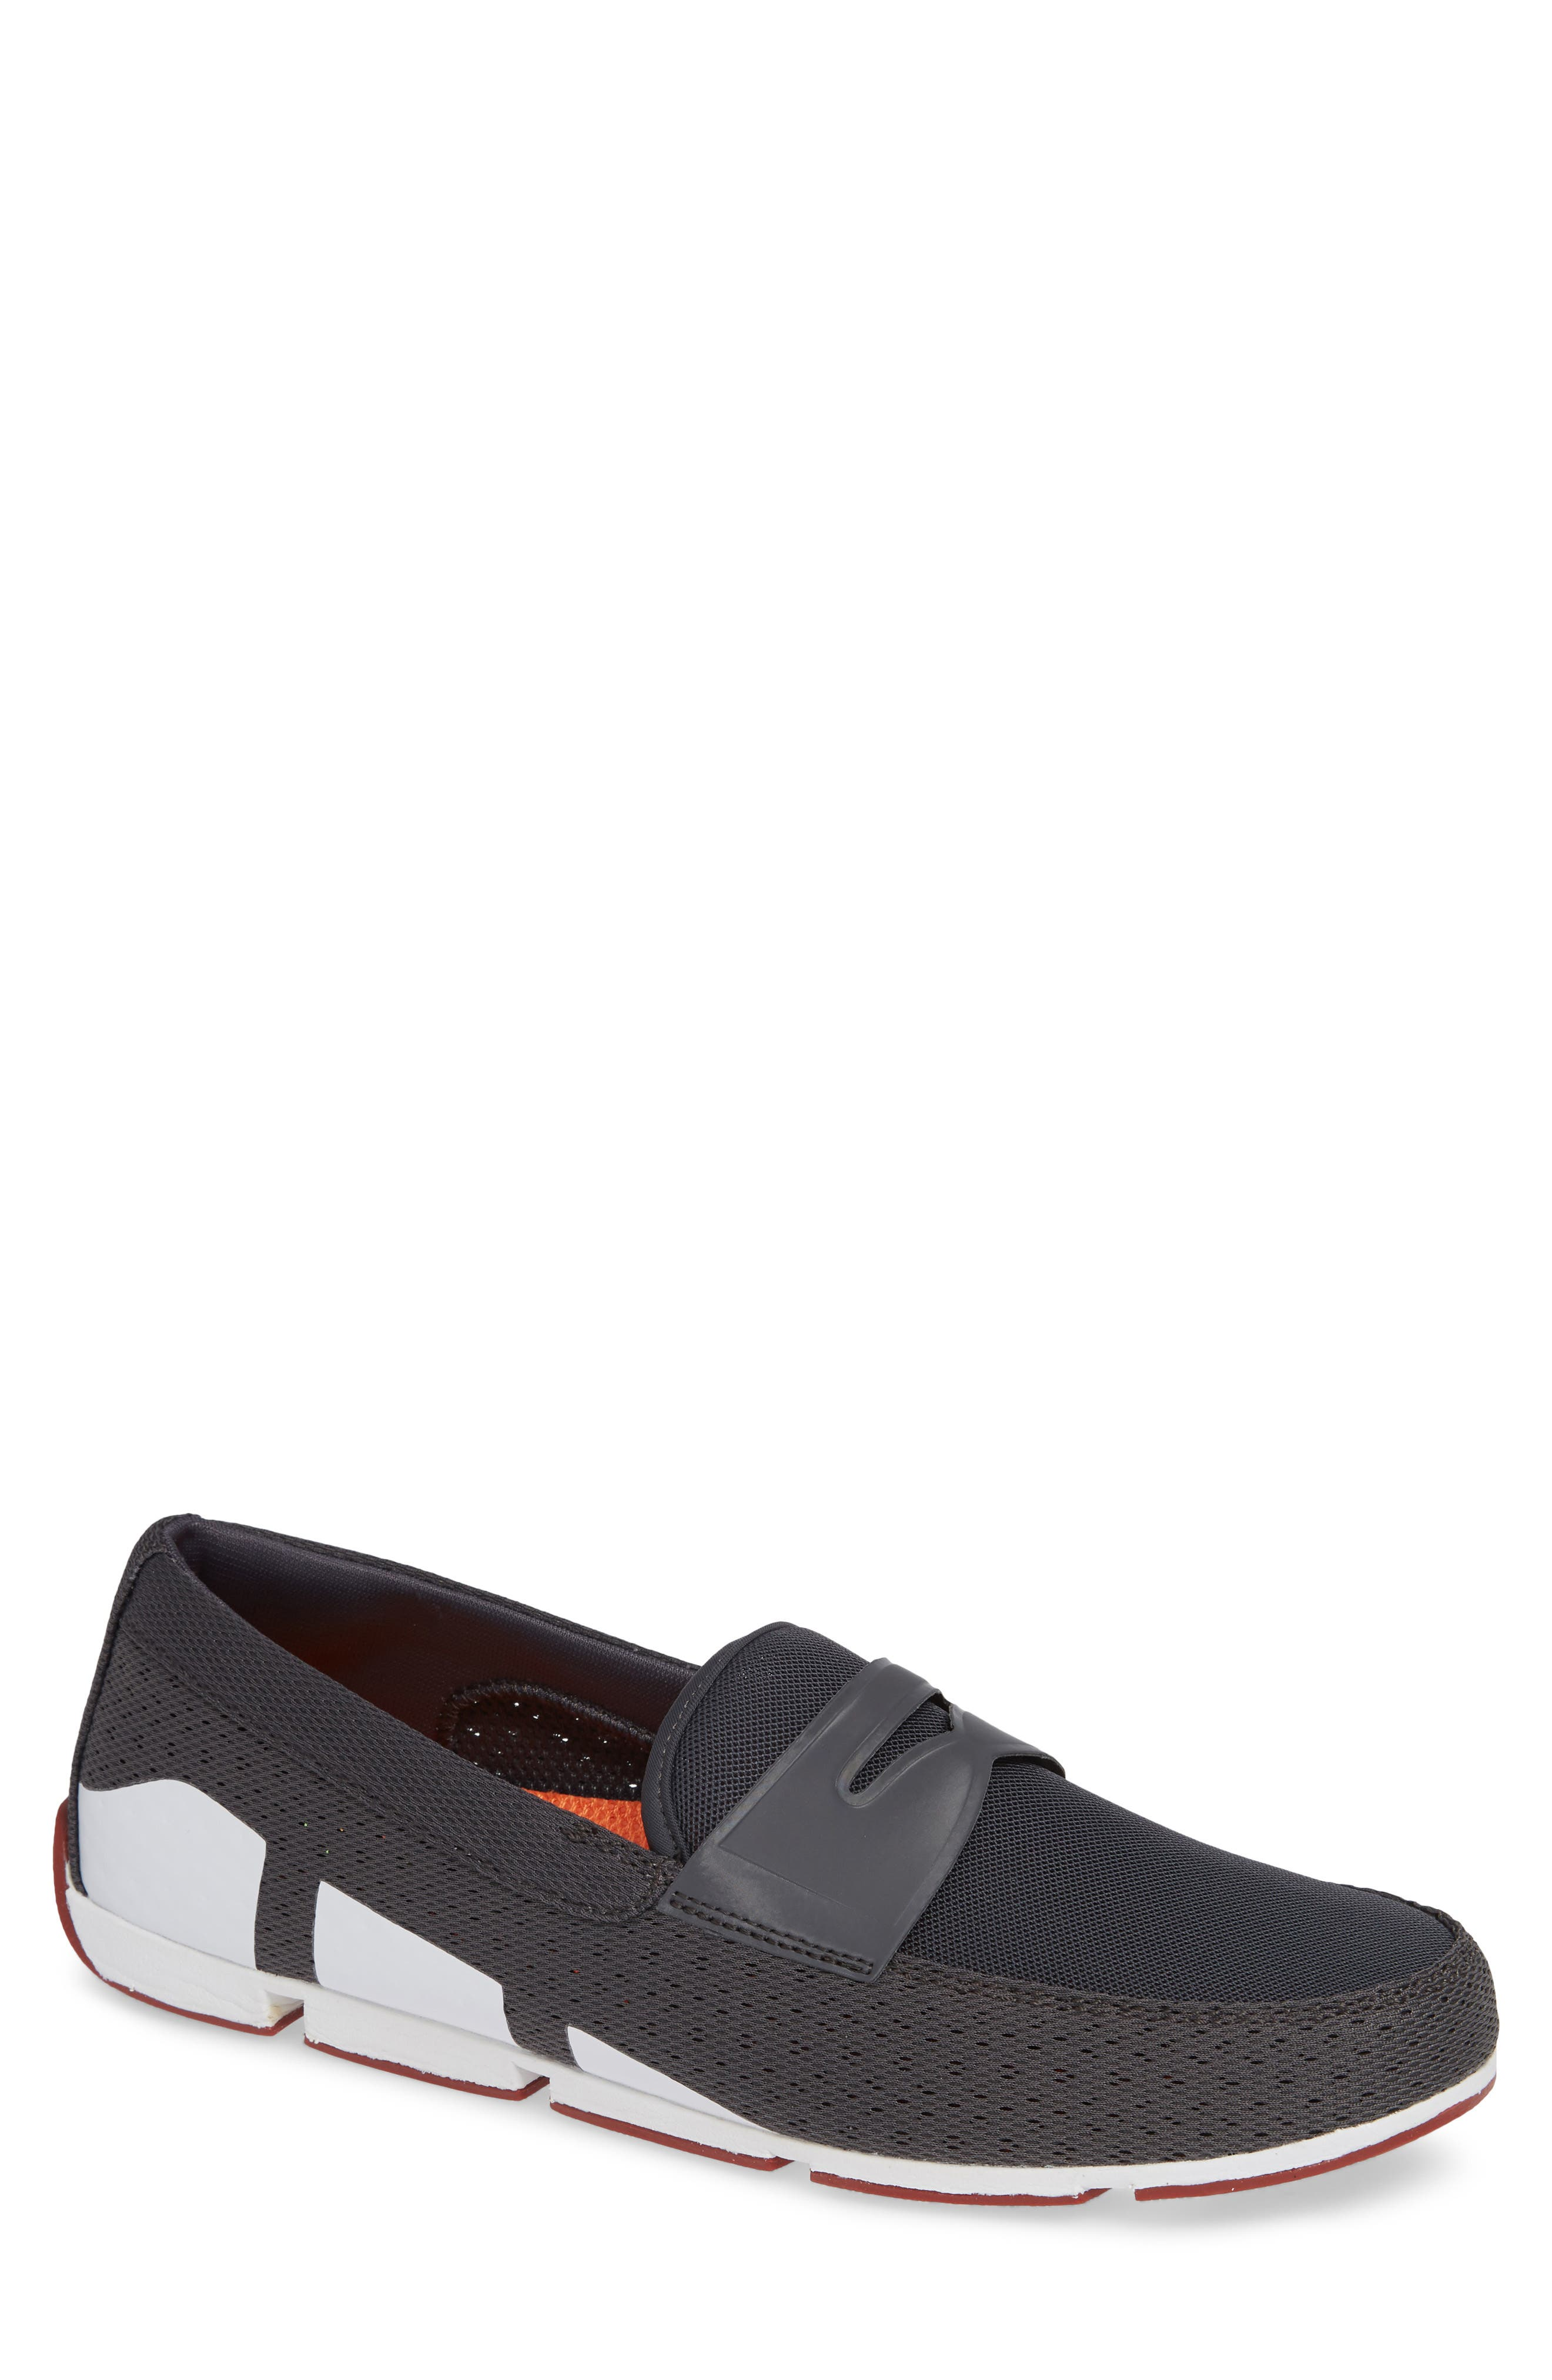 Breeze Penny Loafer,                             Main thumbnail 1, color,                             DARK GRAY/RED LACQUER